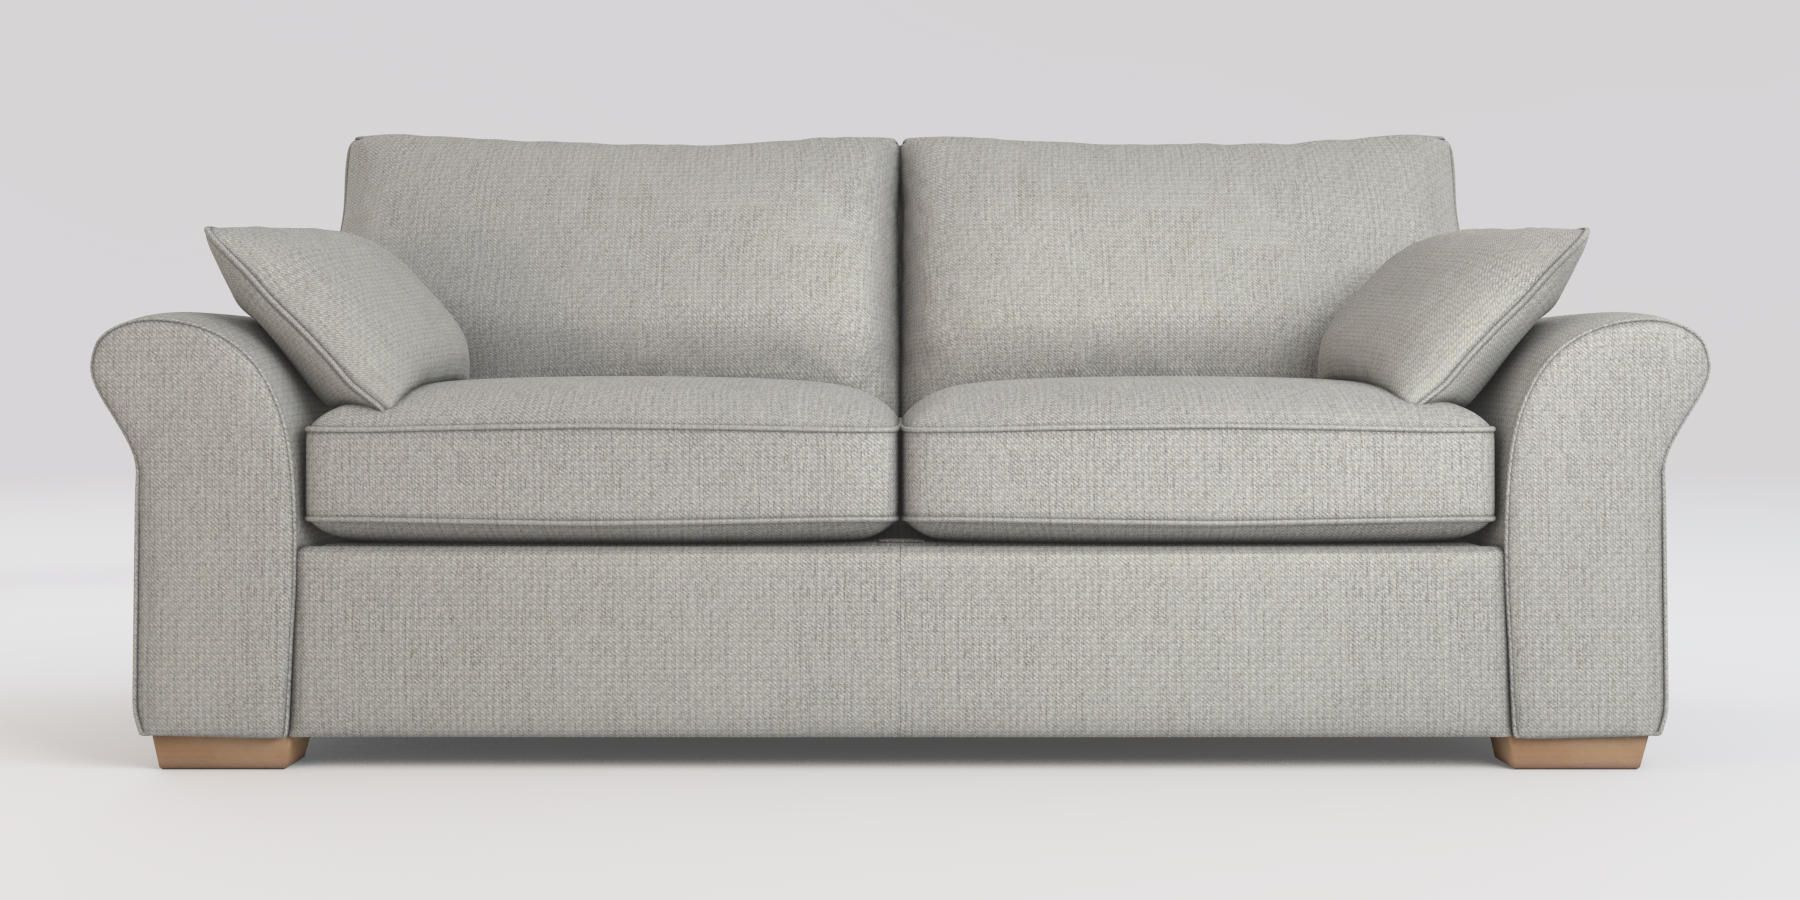 Grey Sofas Uk Next Next Garda Lge Sofa Cosy Twill Light Grey Next Sofas Pinterest